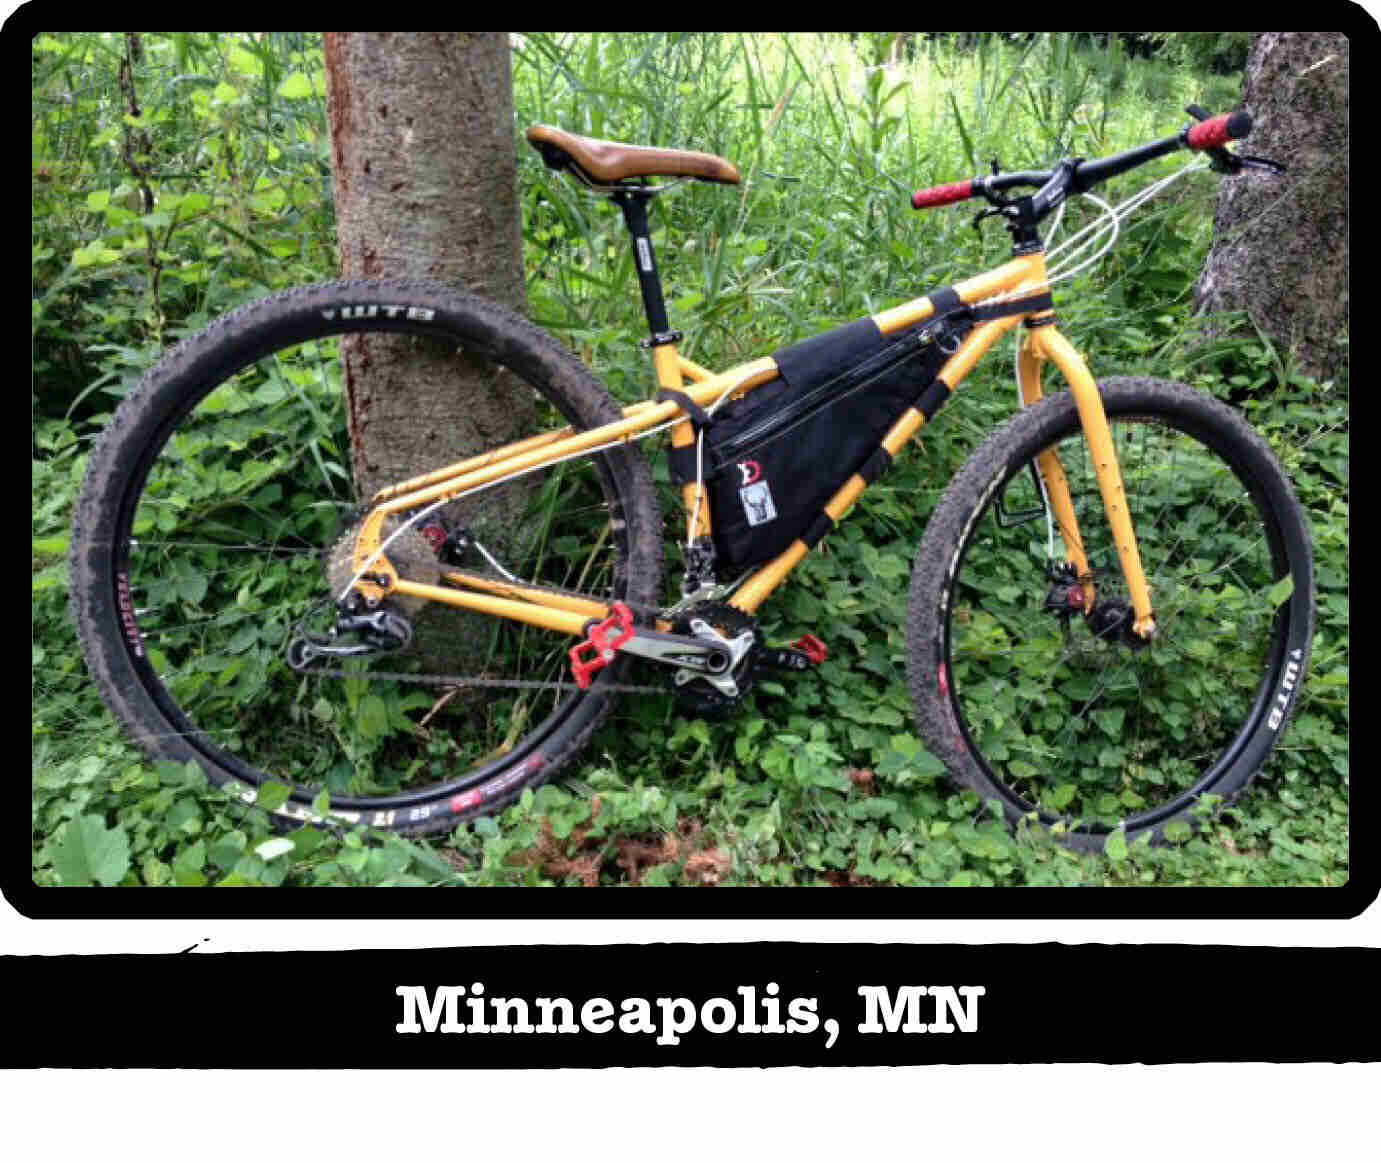 Right side view of a Surly ECR bike, yellow, against a tree in the weeds - Minneapolis, MN tag below image